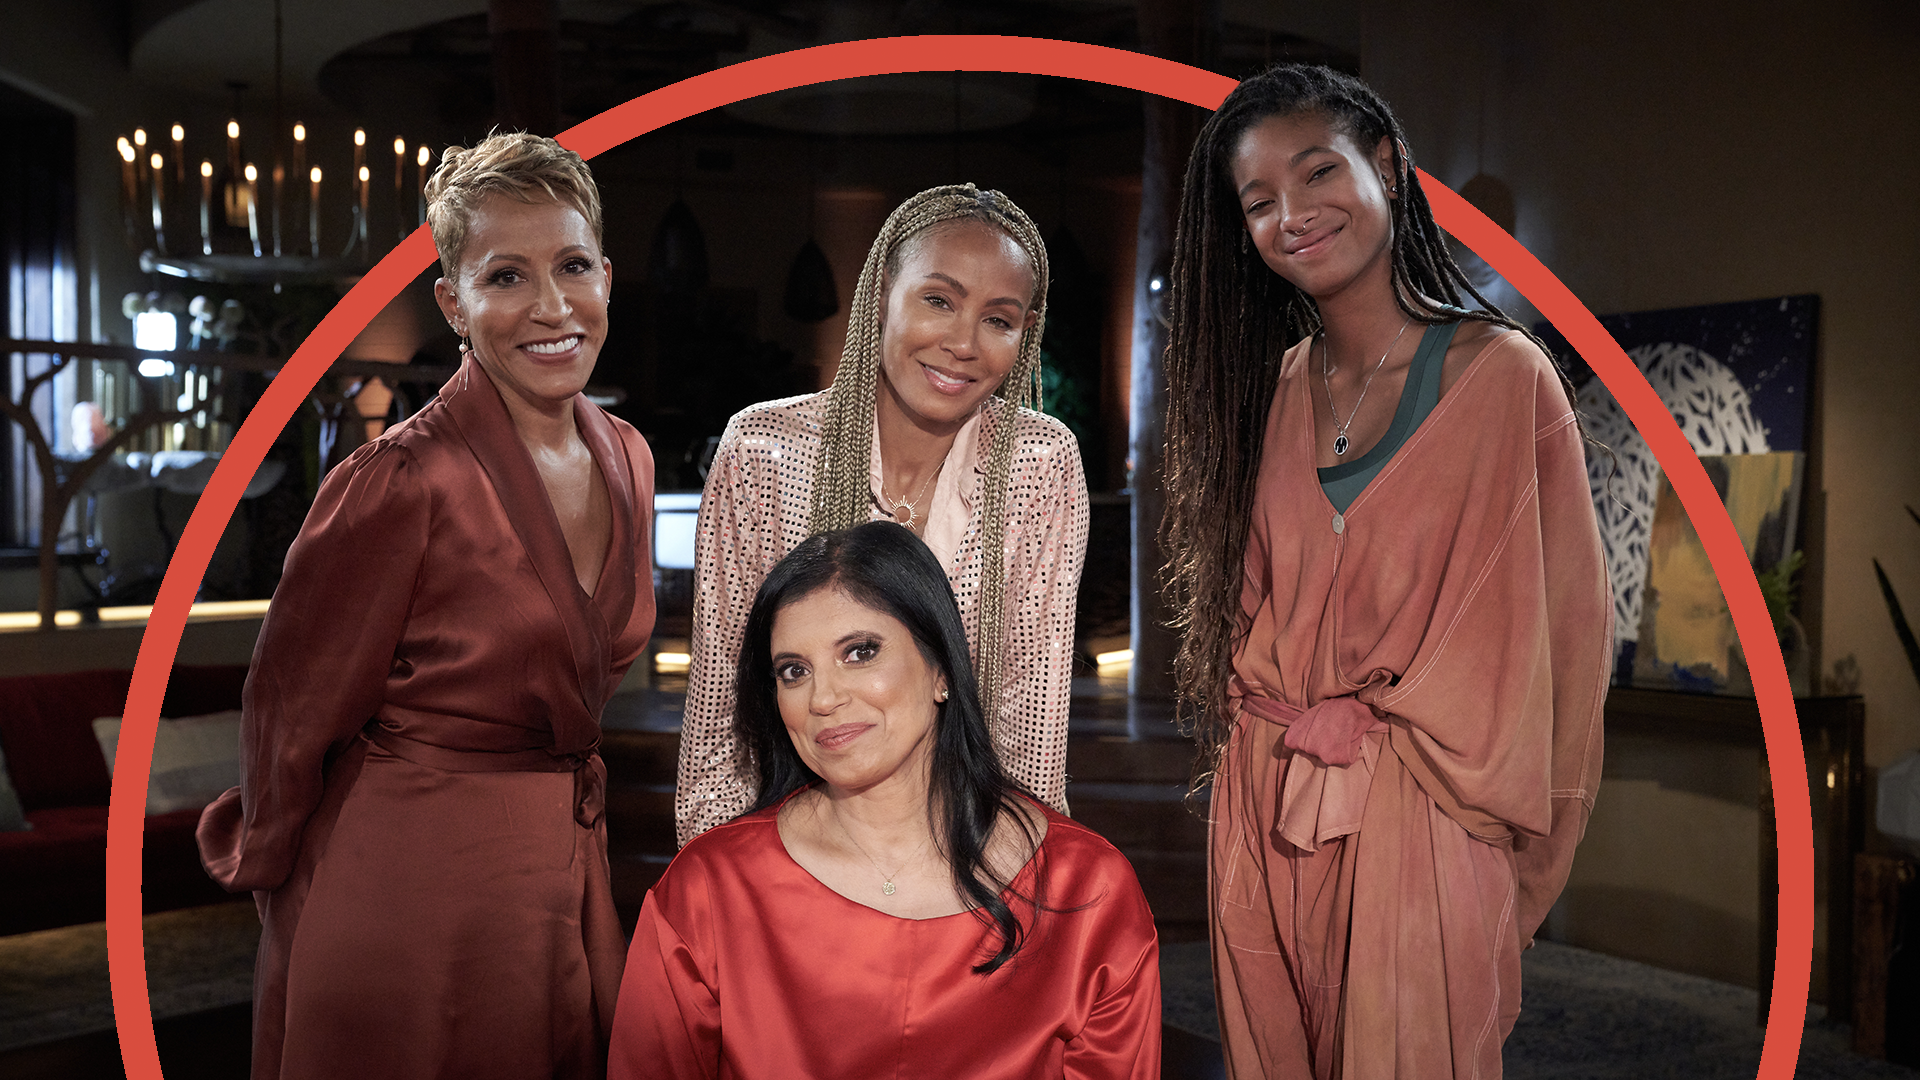 Image of Dr. Ramani Durvasula, Jada, Willow and Gammy